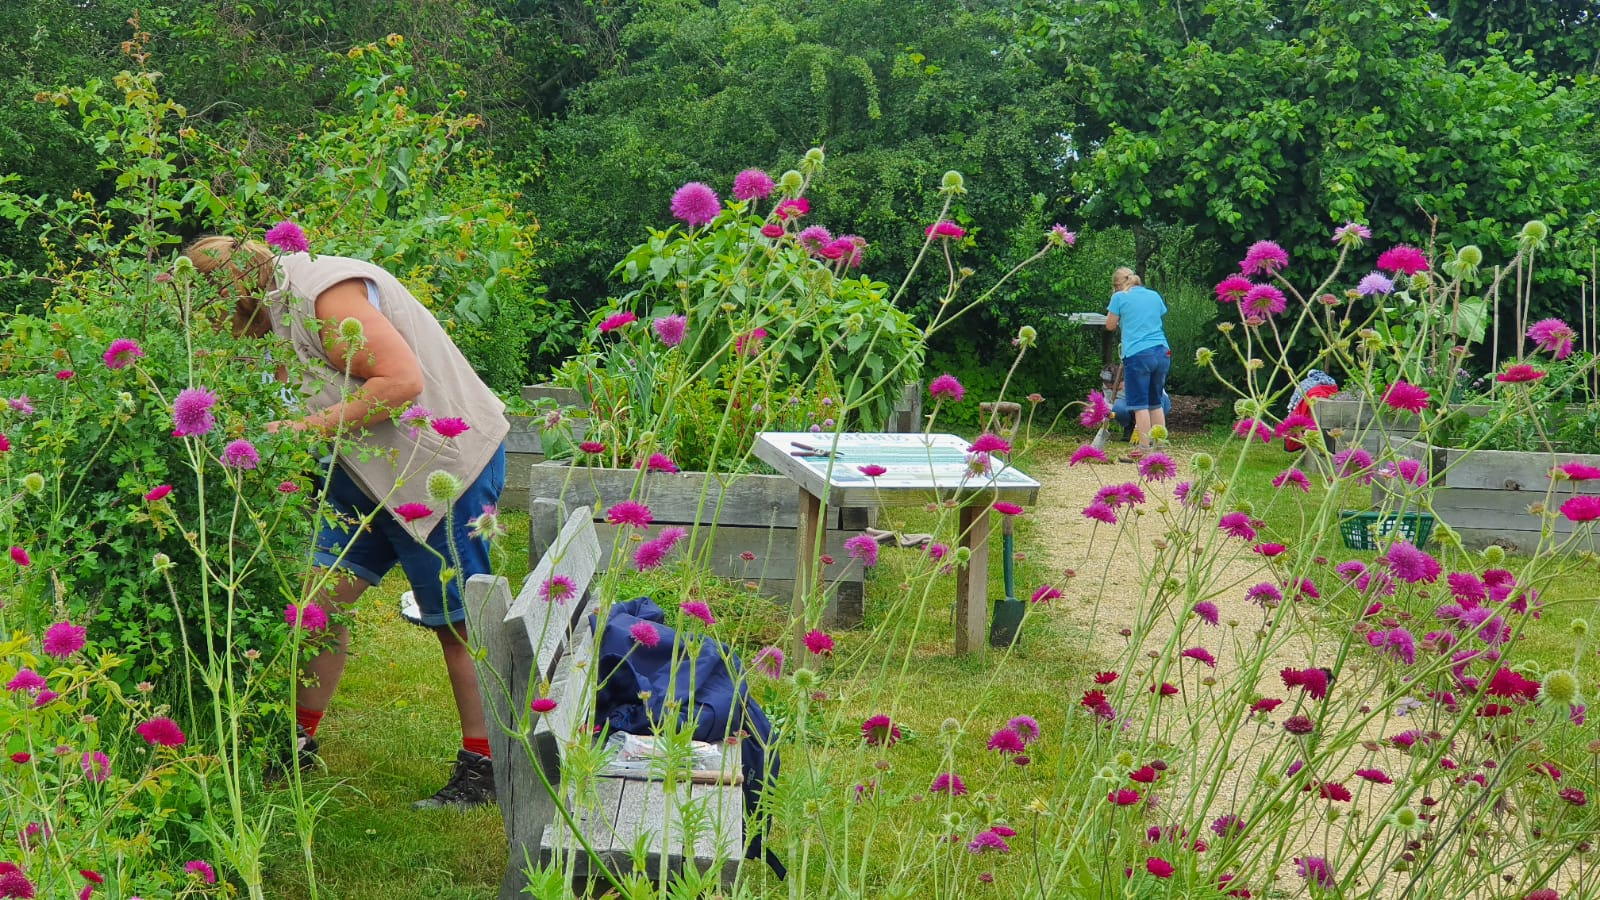 A time for weeding and enjoying the wildlife